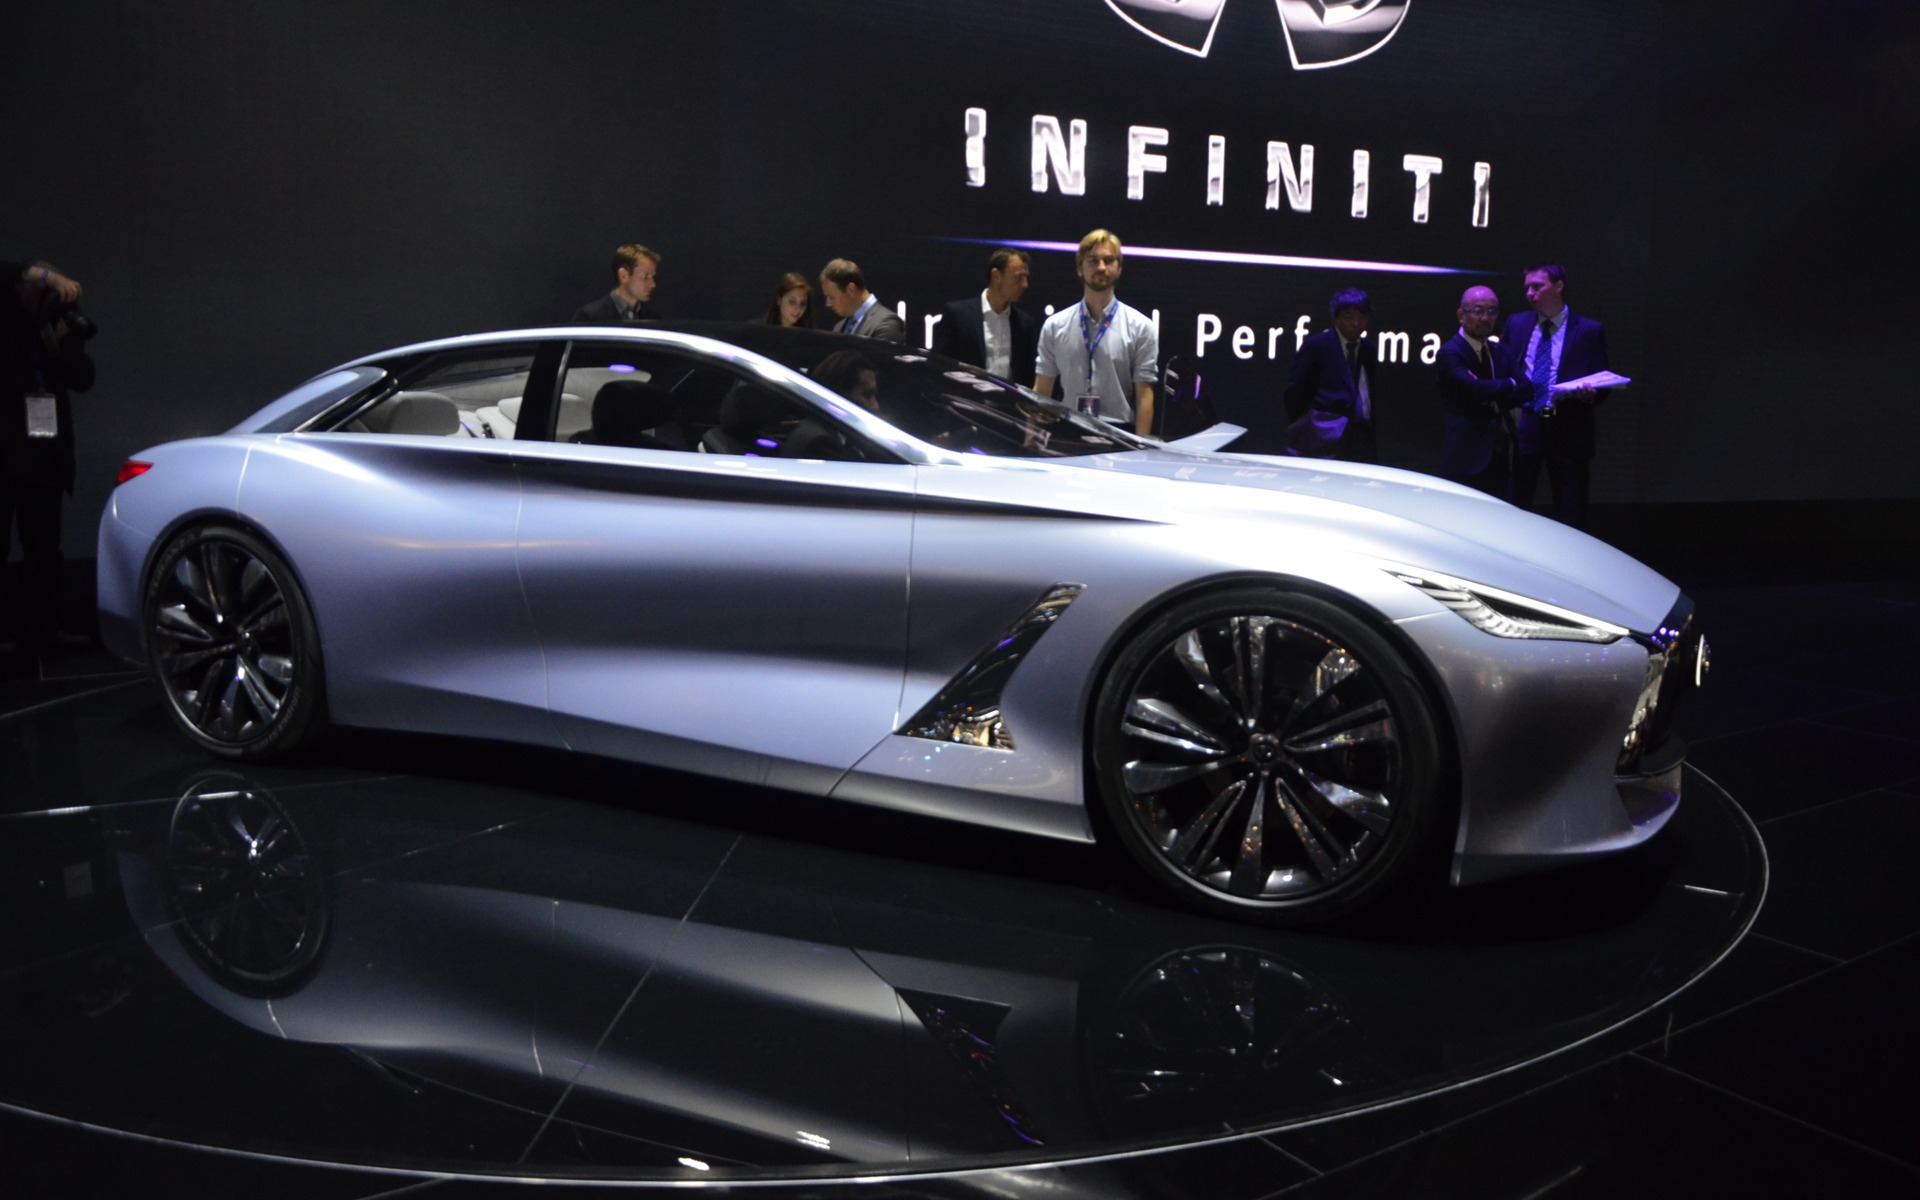 q80 inspiration concept infiniti 39 s next flagship infiniti concept the car guide. Black Bedroom Furniture Sets. Home Design Ideas